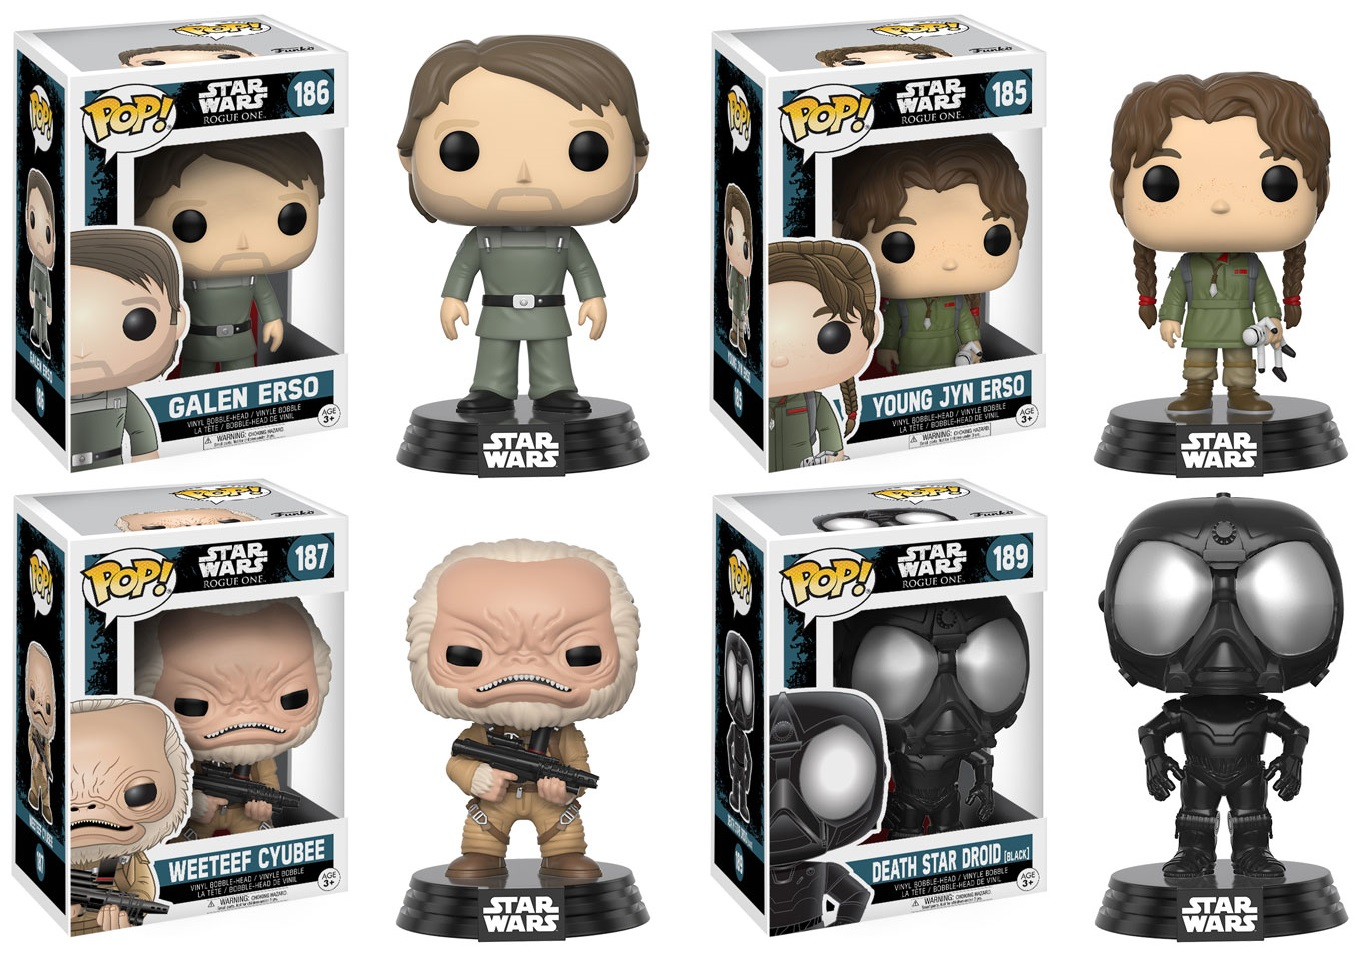 The Blot Says Star Wars Rogue One Pop Series 2 By Funko Bott Emperors Kronk Galen Erso Young Jyn